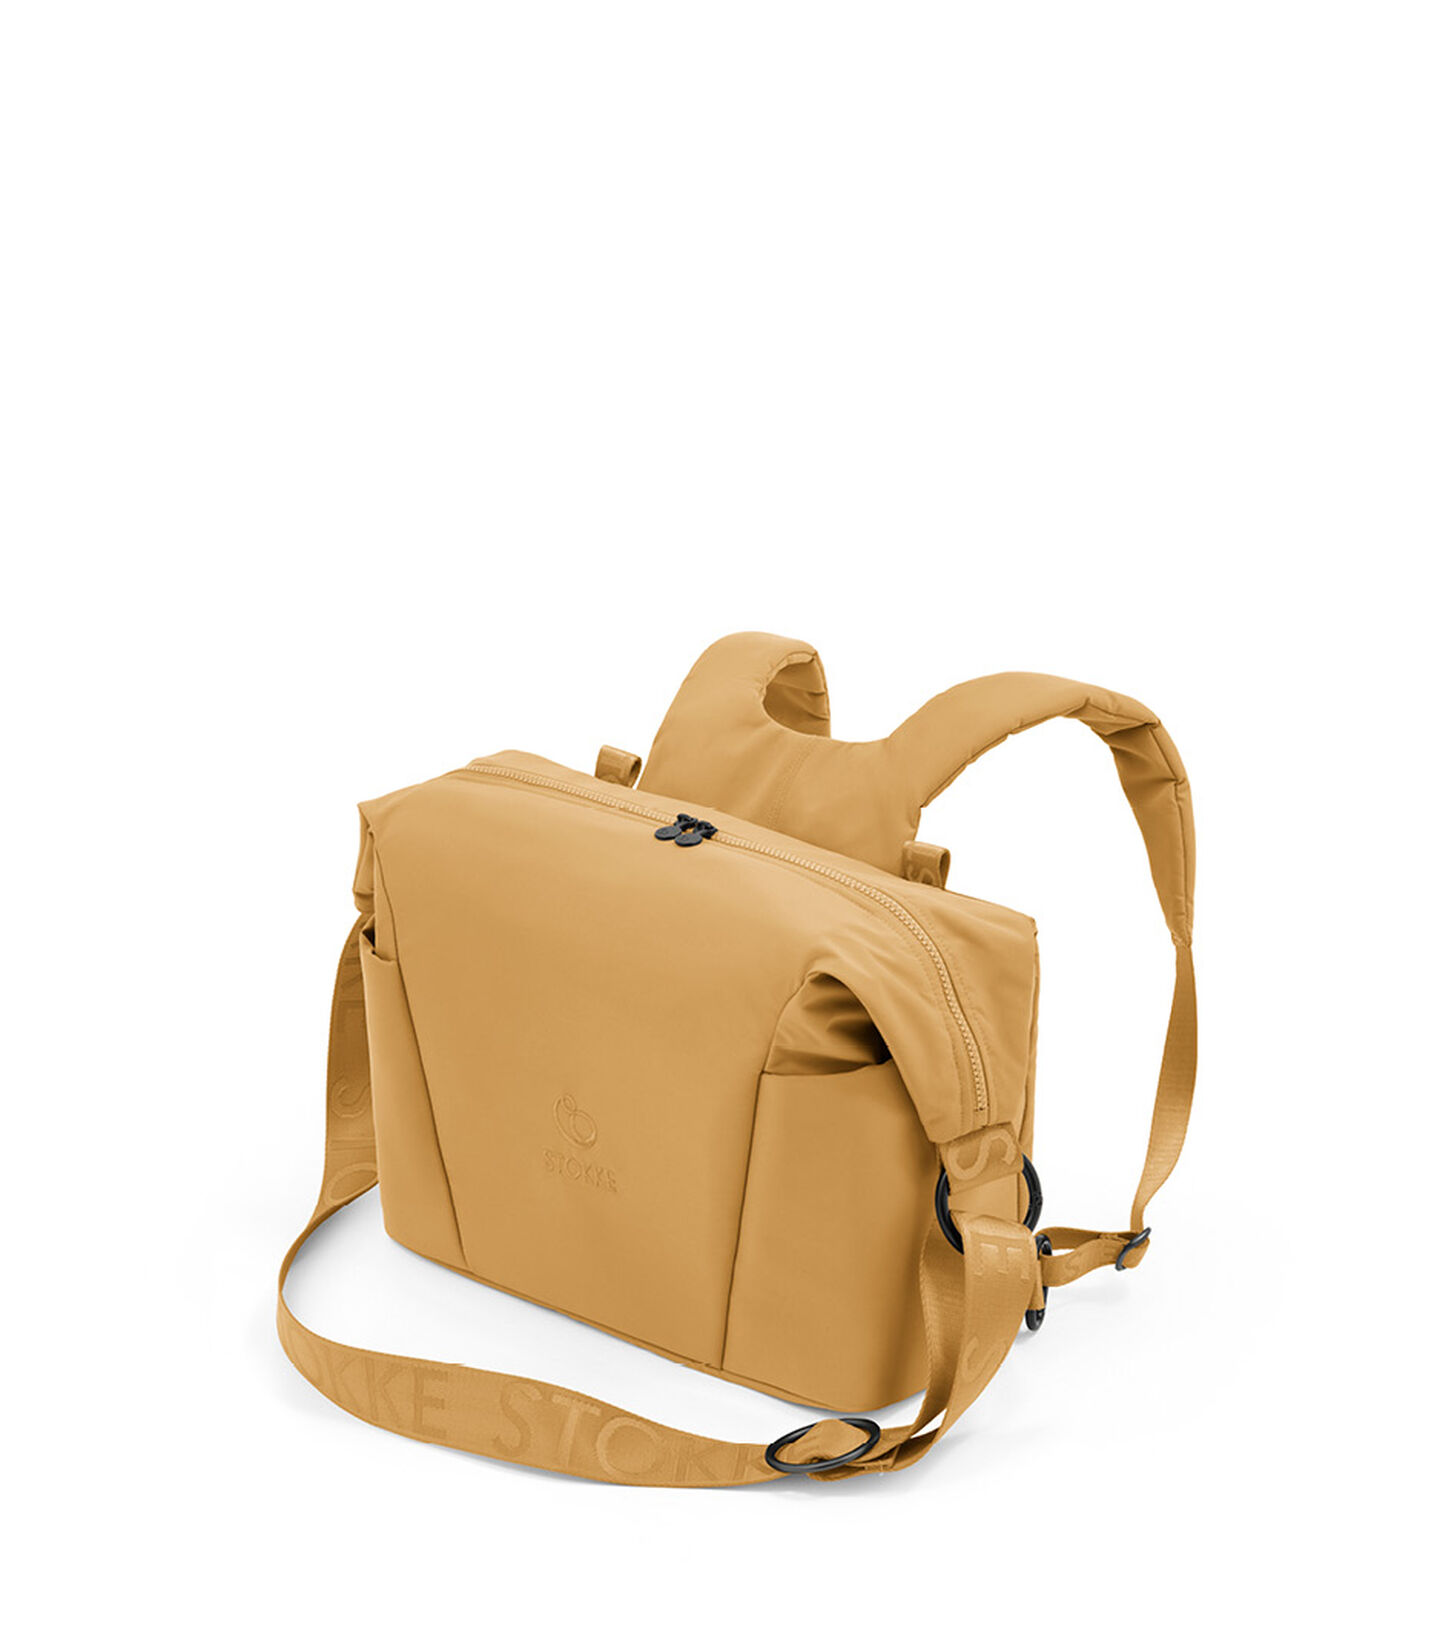 Stokke® Xplory® X Changing bag Golden Yellow, Golden Yellow, mainview view 2